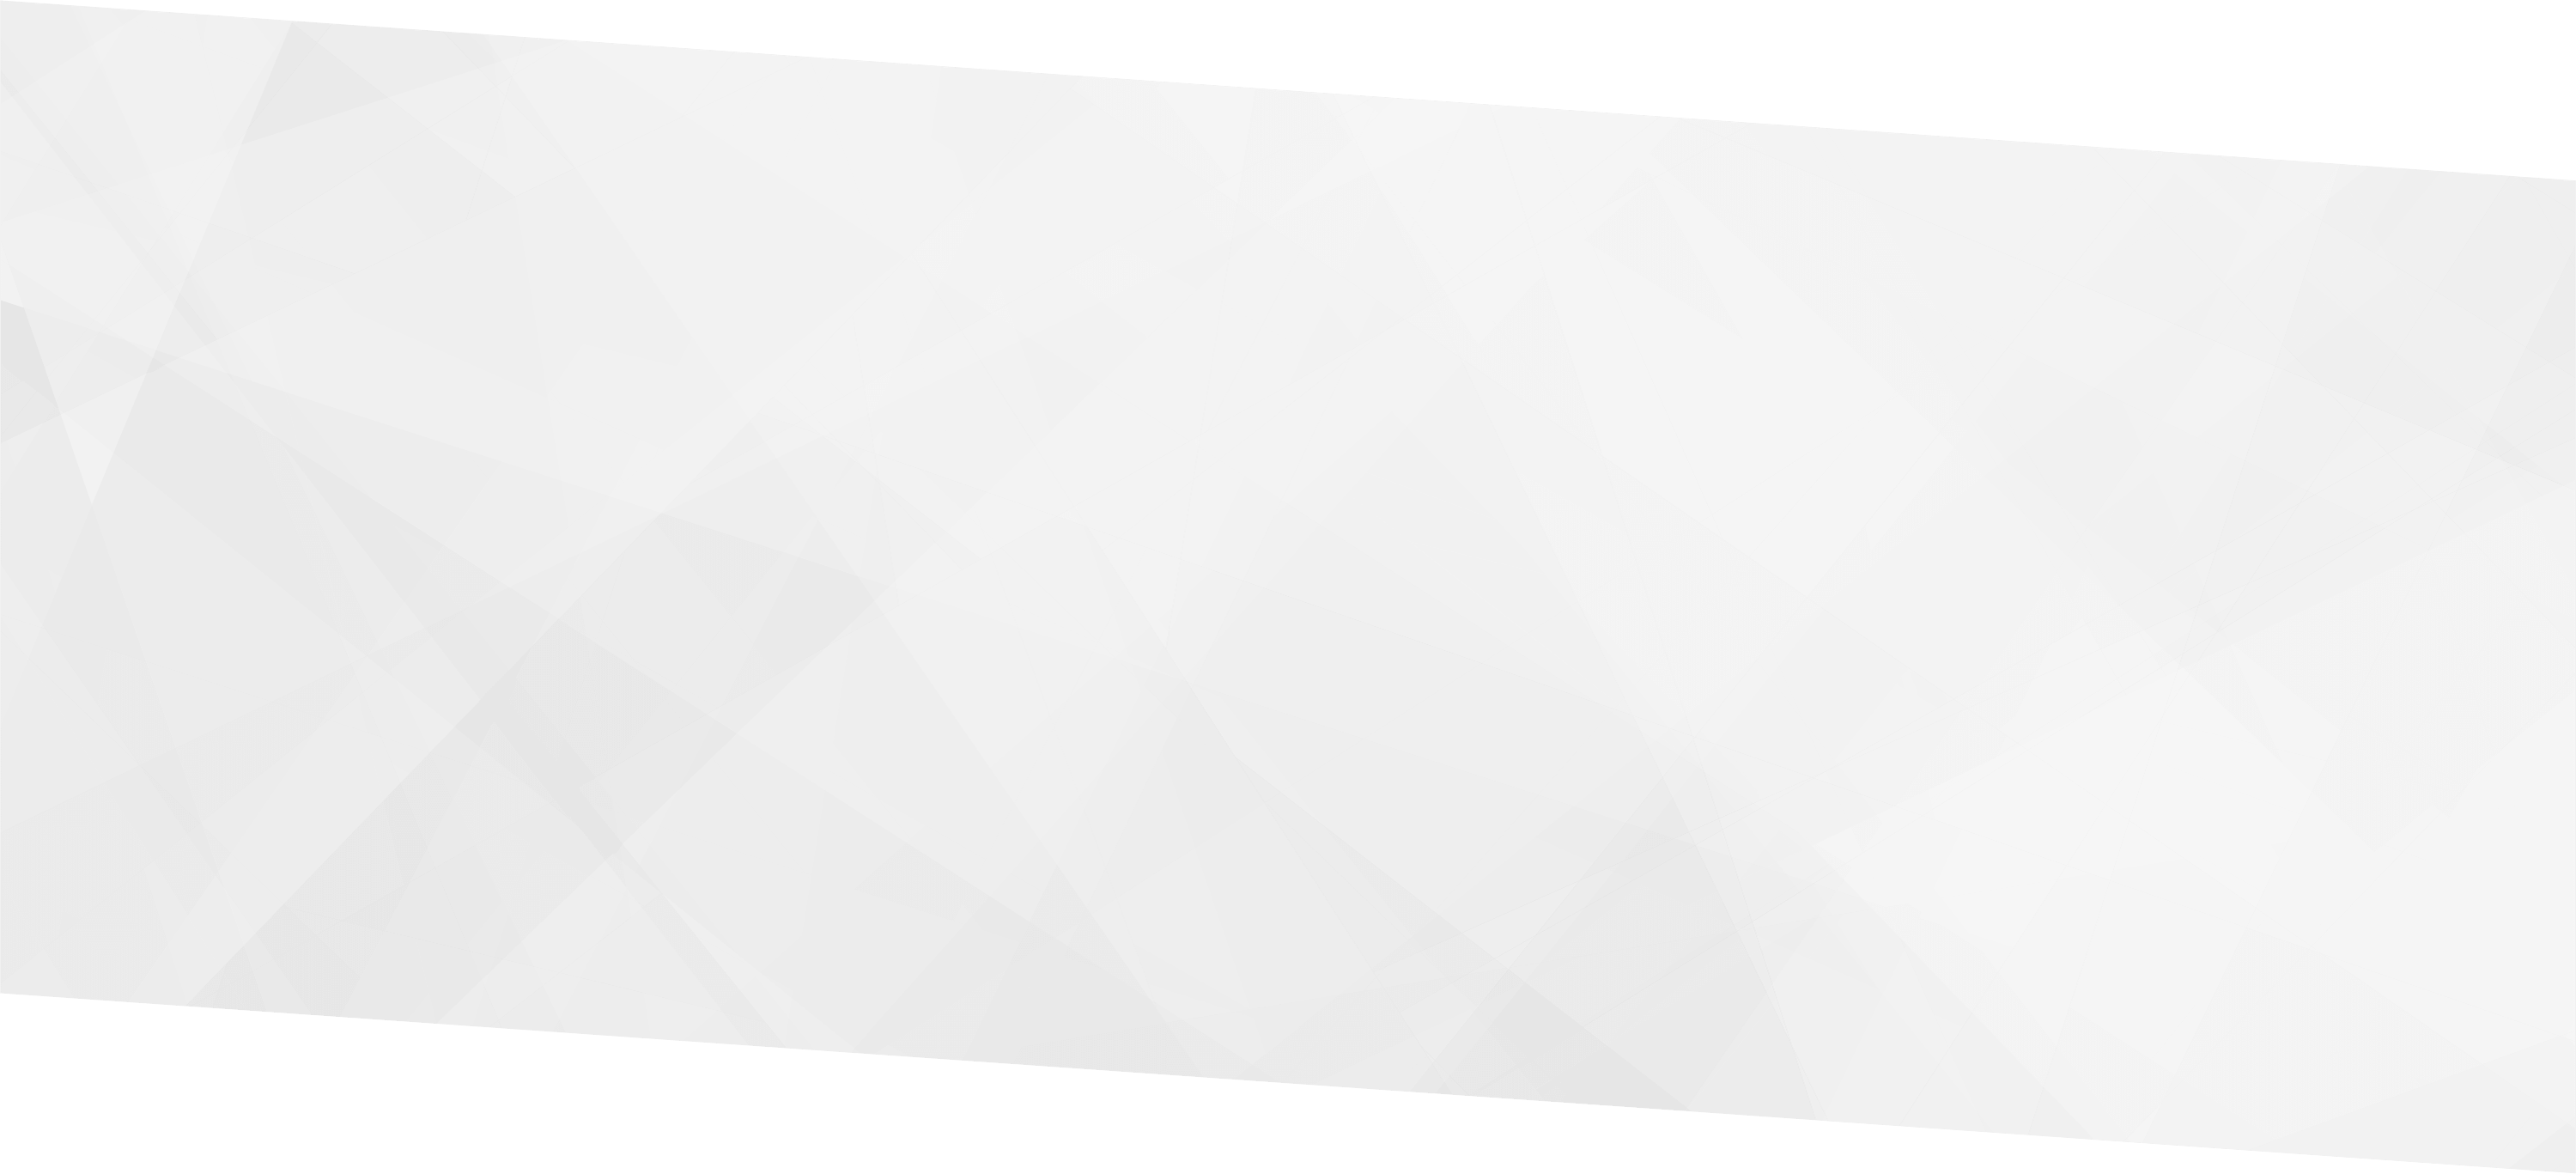 white paper footer background